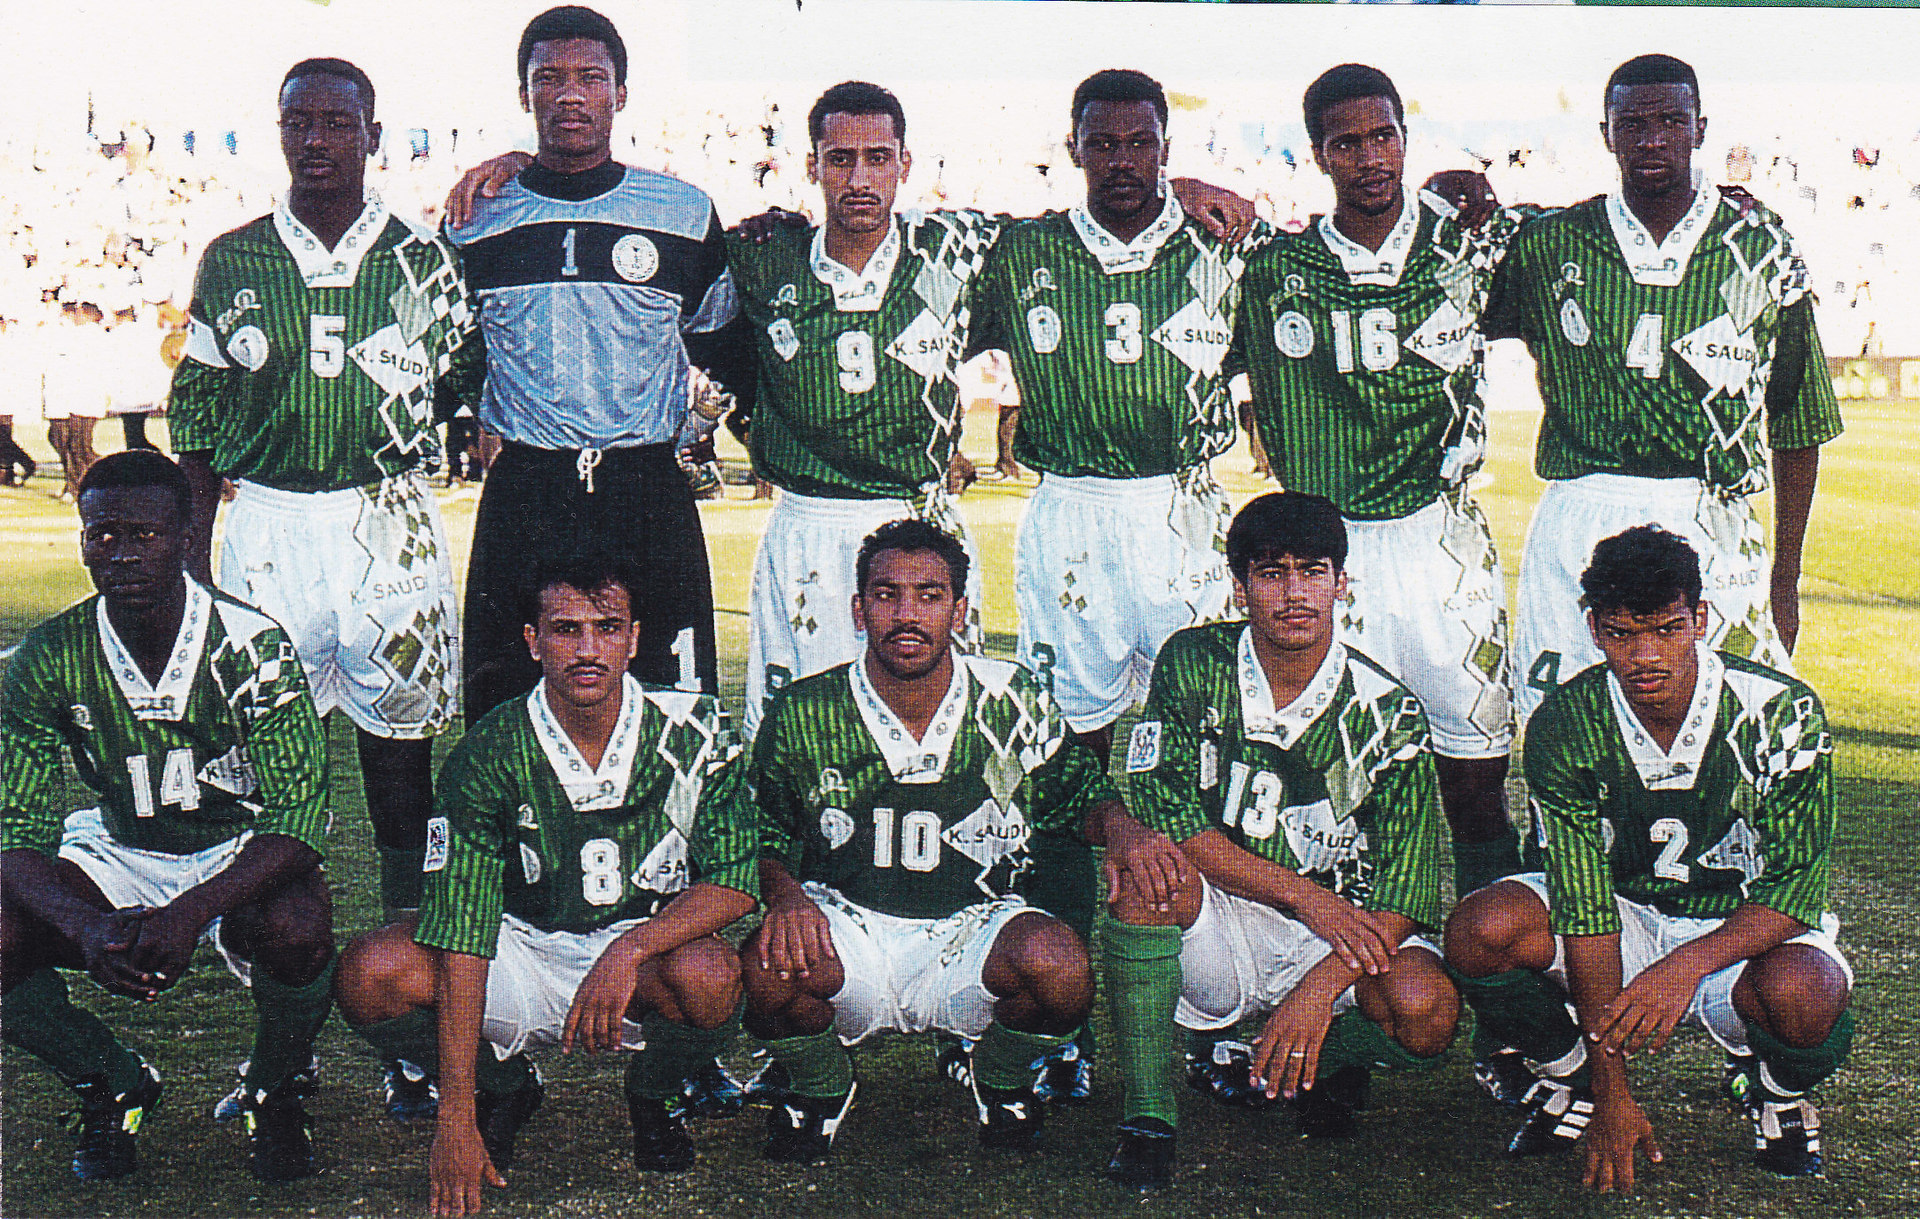 Saudi-Arabia-1996-Shamel-asian-cup-away-kit-green-white-green-line-up.jpg